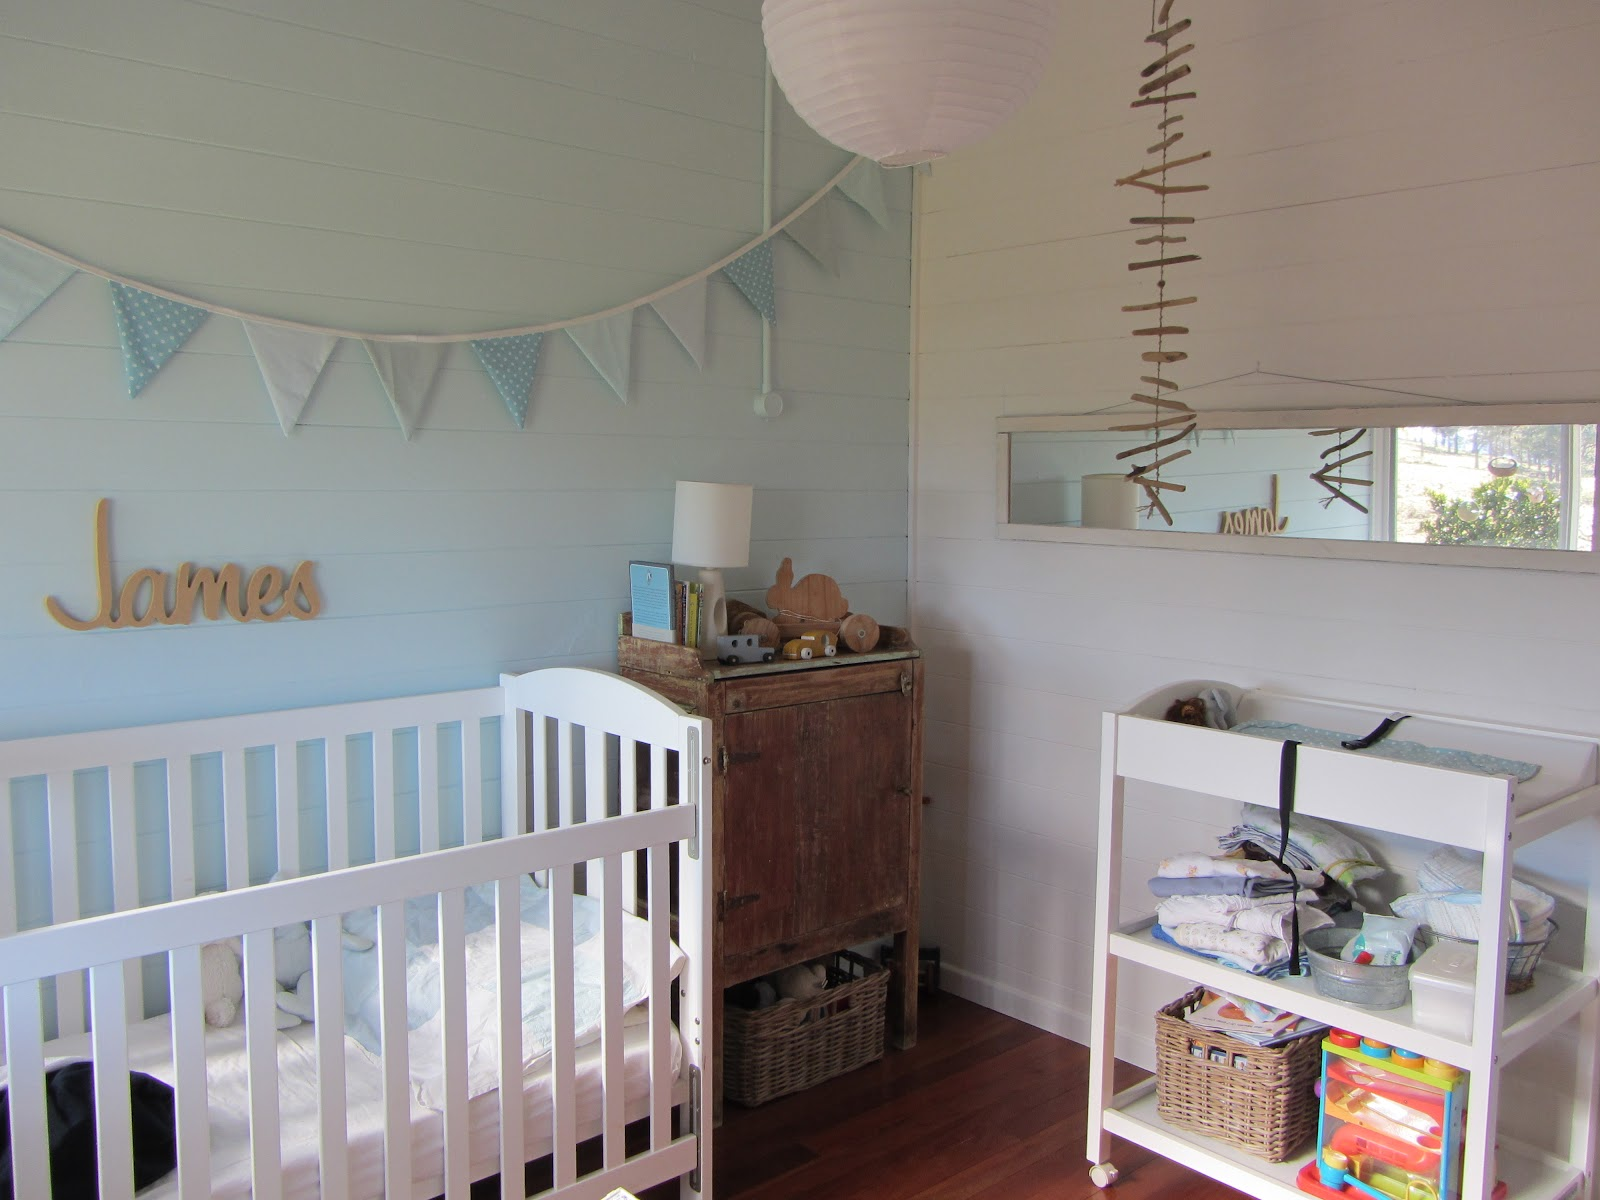 Thom haus handmade soft colours for a baby boy s bedroom for Bedroom ideas for baby boys